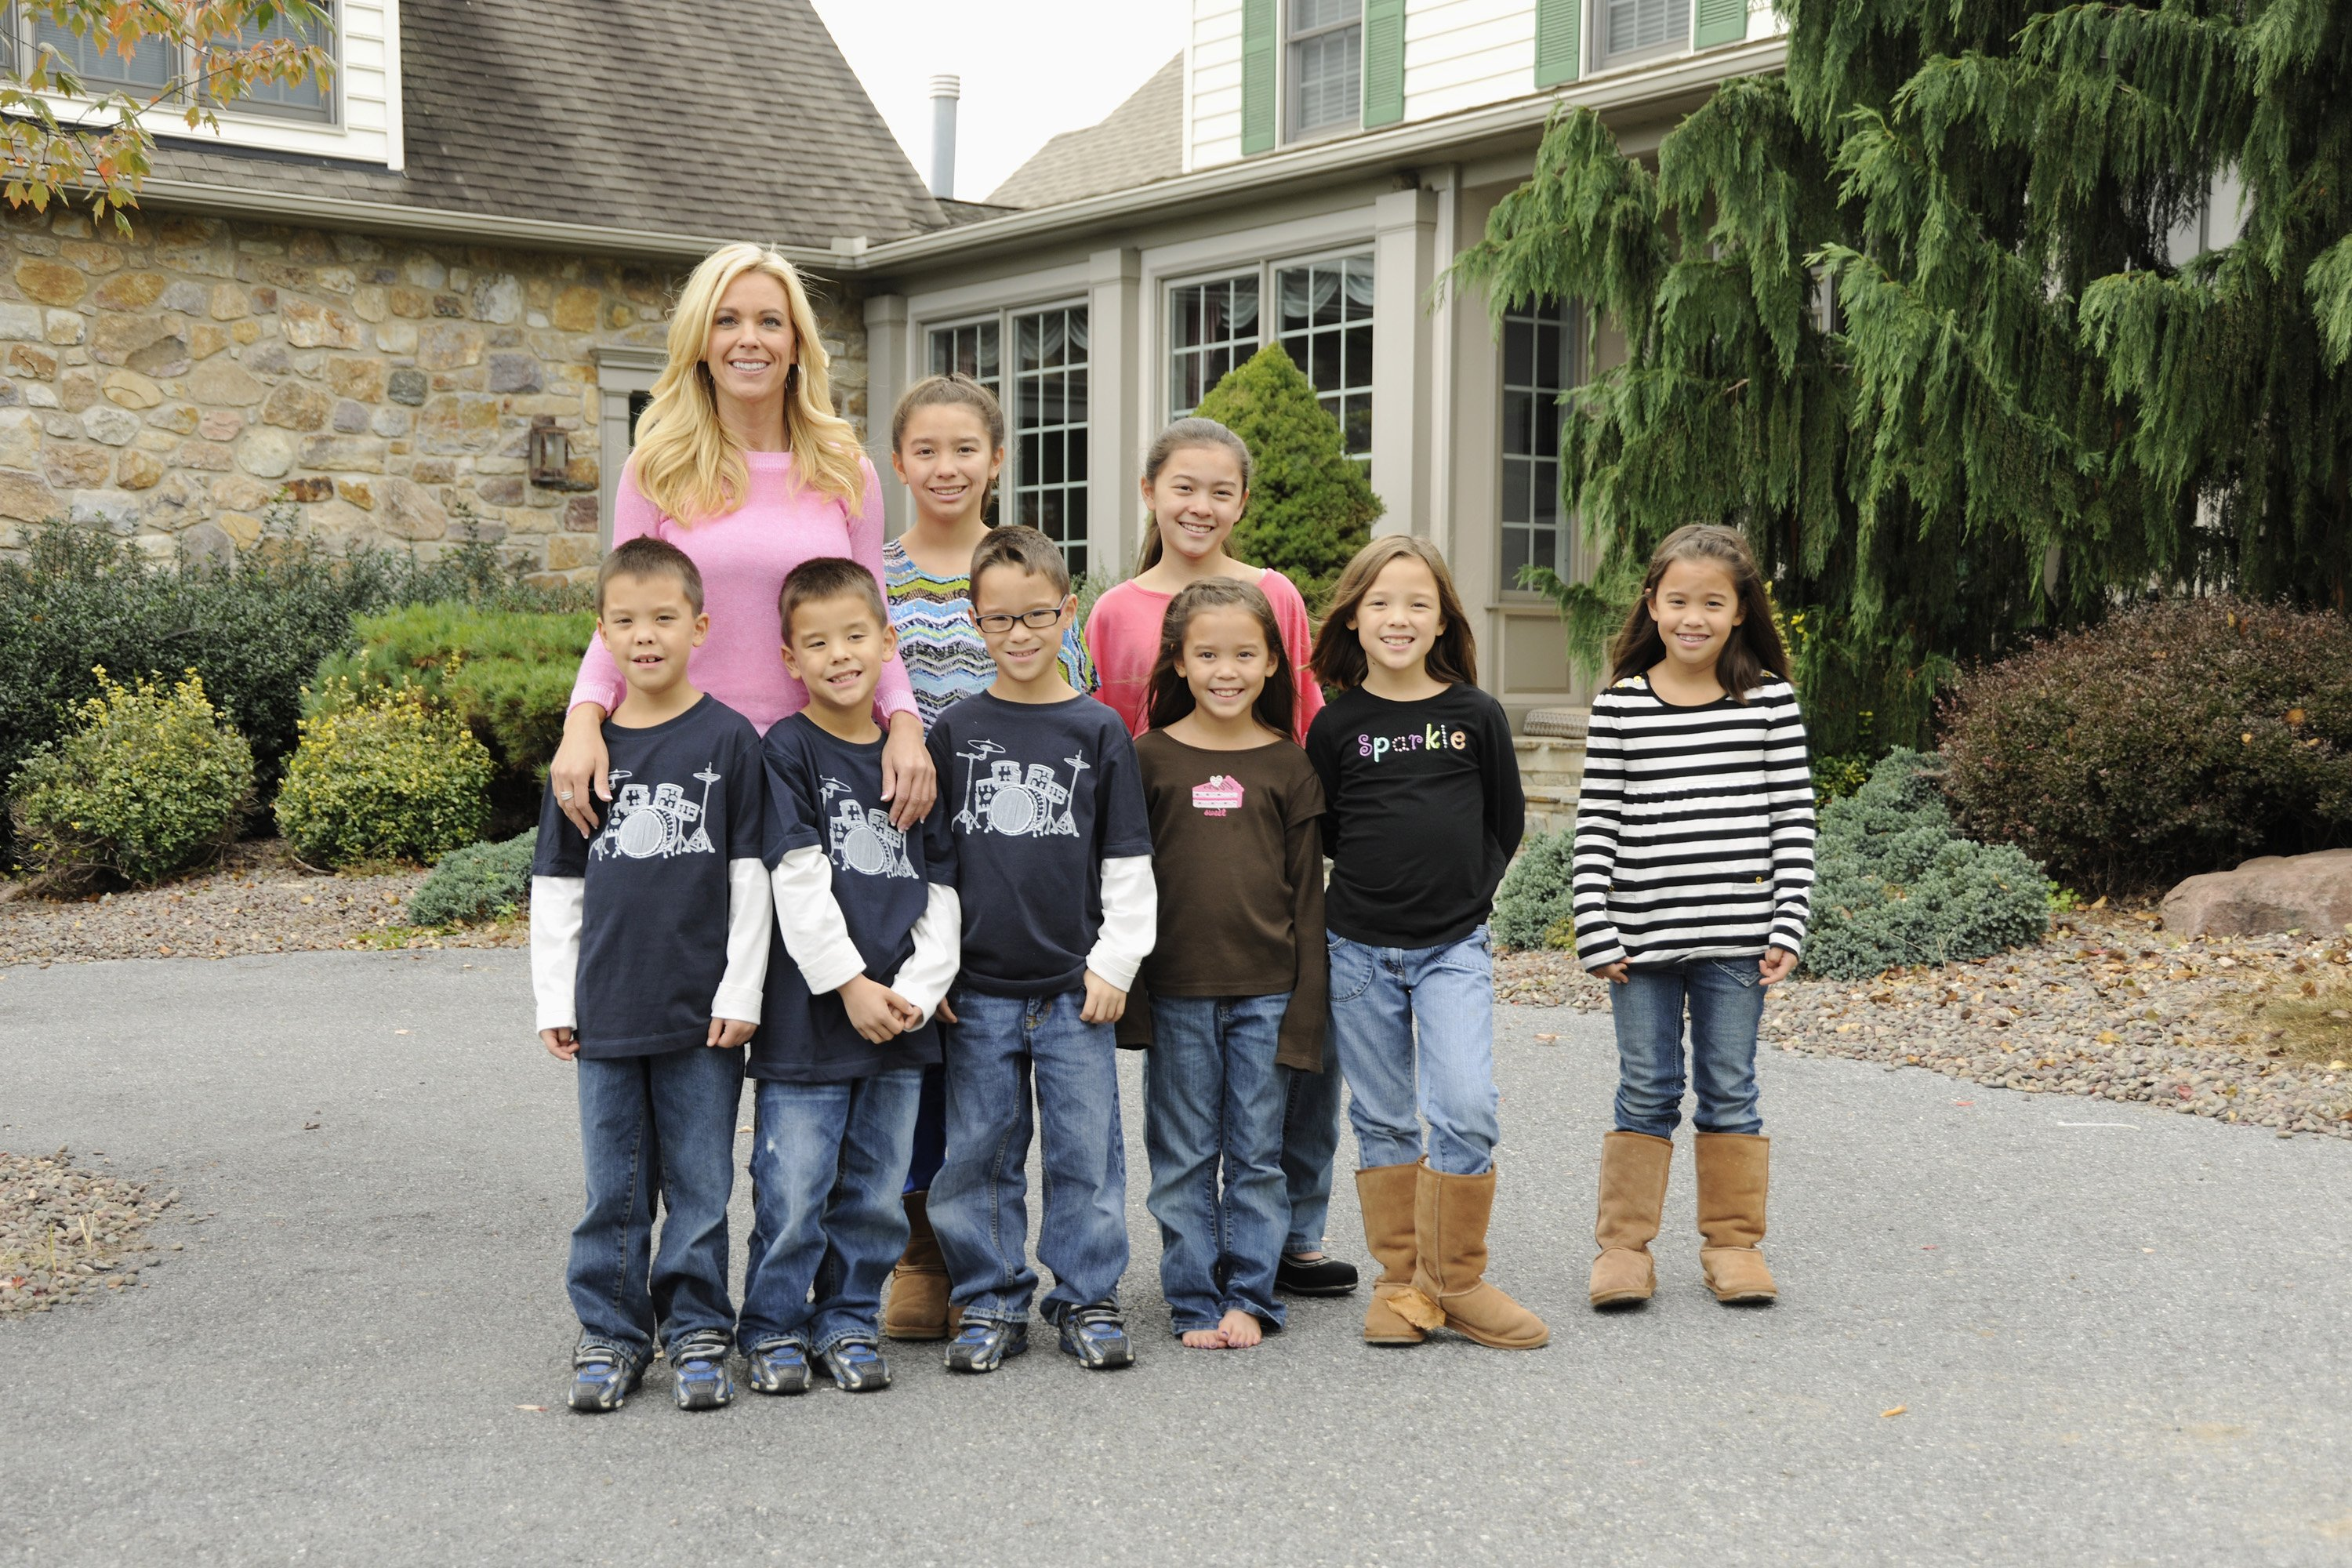 Kate Gosselin with her twins and sextuplets with ex-husband Jon Gosselin in October 2012. | Source: Getty Images.